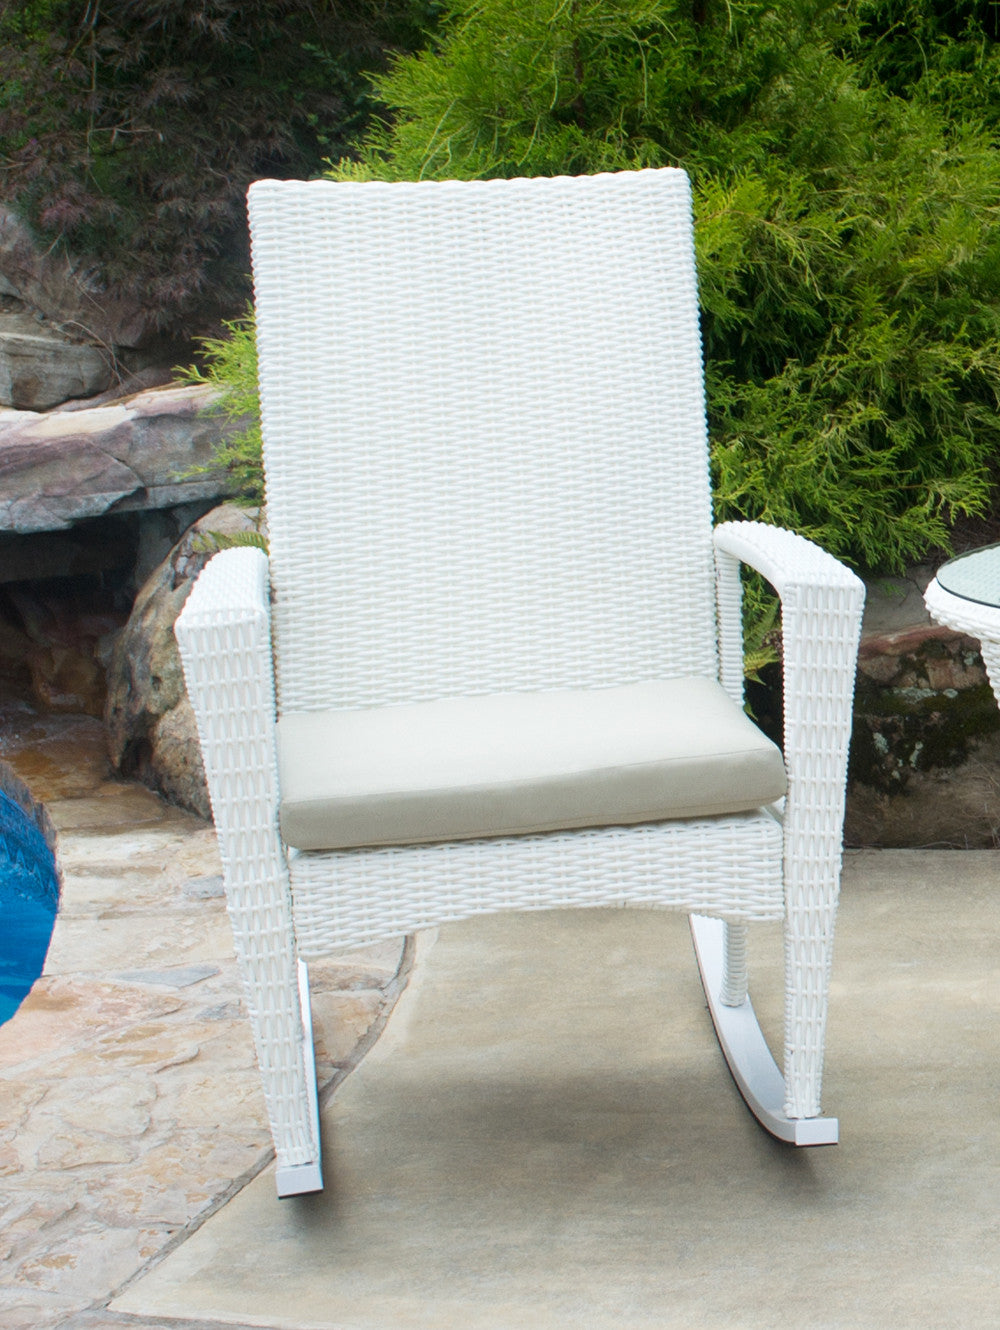 Tortuga Outdoor Tortuga Outdoor Bayview Rocking Chair from Tortuga Outdoor Rocking Chair - Rattan Imports